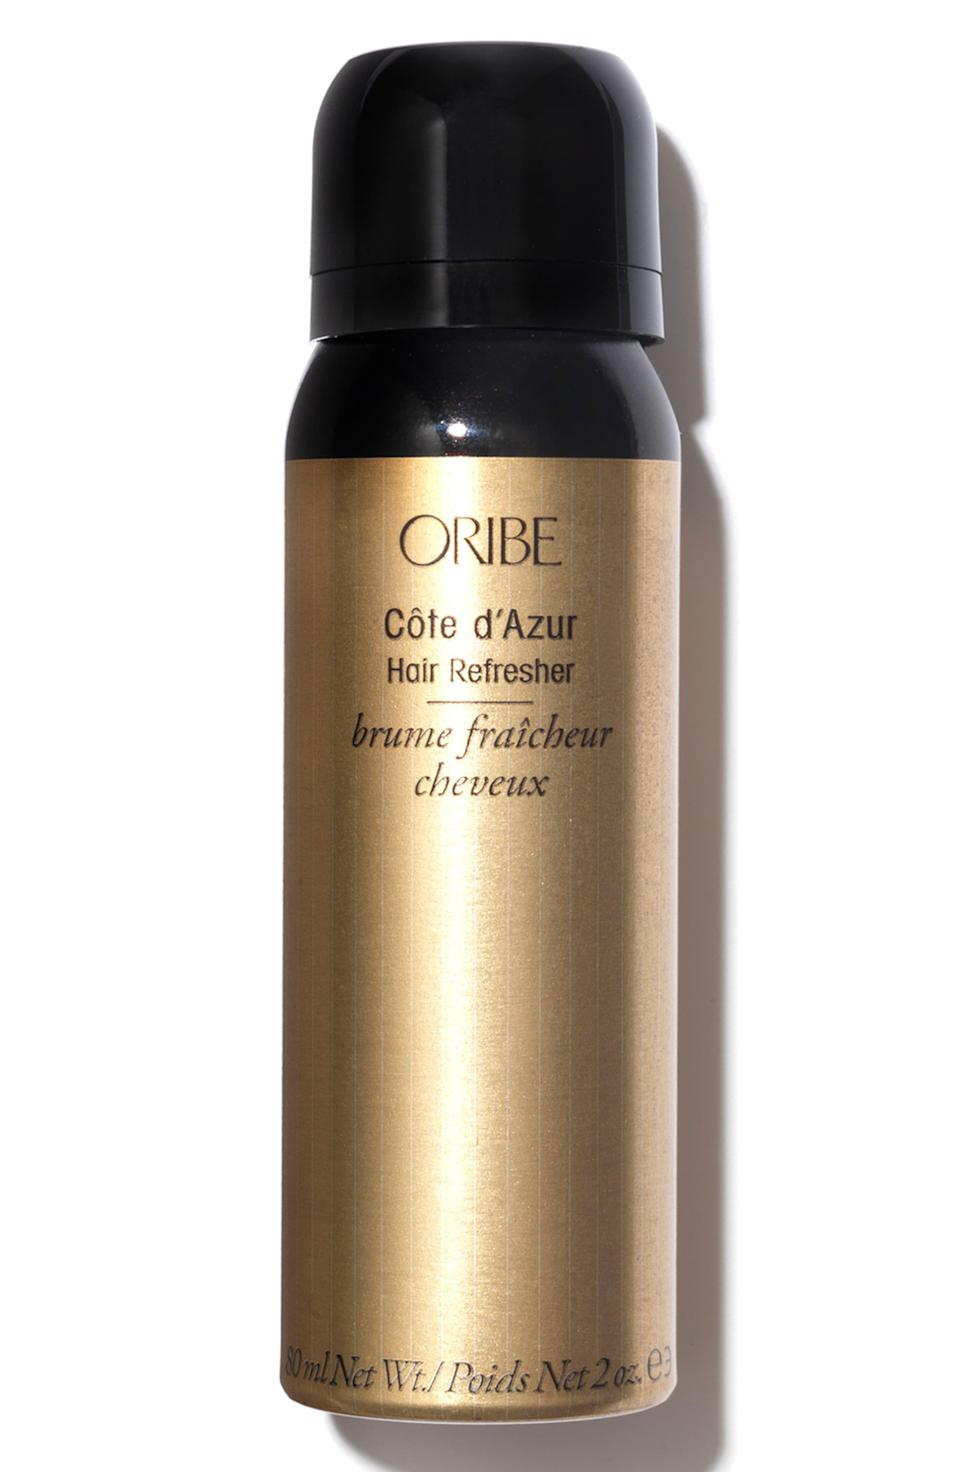 """<p><strong>ORIBE</strong></p><p>nordstrom.com</p><p><strong>$26.00</strong></p><p><a href=""""https://go.redirectingat.com?id=74968X1596630&url=https%3A%2F%2Fshop.nordstrom.com%2Fs%2Fspace-nk-apothecary-oribe-cote-dazur-hair-refresher%2F4498213&sref=https%3A%2F%2Fwww.cosmopolitan.com%2Fstyle-beauty%2Ffashion%2Fg13602855%2Fbest-gift-ideas-for-women%2F"""" rel=""""nofollow noopener"""" target=""""_blank"""" data-ylk=""""slk:Shop Now"""" class=""""link rapid-noclick-resp"""">Shop Now</a></p><p>Their locks will feel instantly refreshed with light perfume spray that also happens to cut down on static. If you need proof of how good this smells, Côte d'Azur is such a popular fragrance that the <a href=""""https://go.redirectingat.com/?id=74968X1525071&xs=1&url=https%3A%2F%2Fshop.nordstrom.com%2Fs%2Fspace-nk-apothecary-oribe-cote-dazur-eau-de-parfum%2F4540347&sref=https%3A%2F%2Fwww.cosmopolitan.com%2Fstyle-beauty%2Ffashion%2Fg13602855%2Fbest-gift-ideas-for-women%2F"""" rel=""""nofollow noopener"""" target=""""_blank"""" data-ylk=""""slk:brand even made it into its own perfume"""" class=""""link rapid-noclick-resp"""">brand even made it into its own perfume</a>.</p>"""